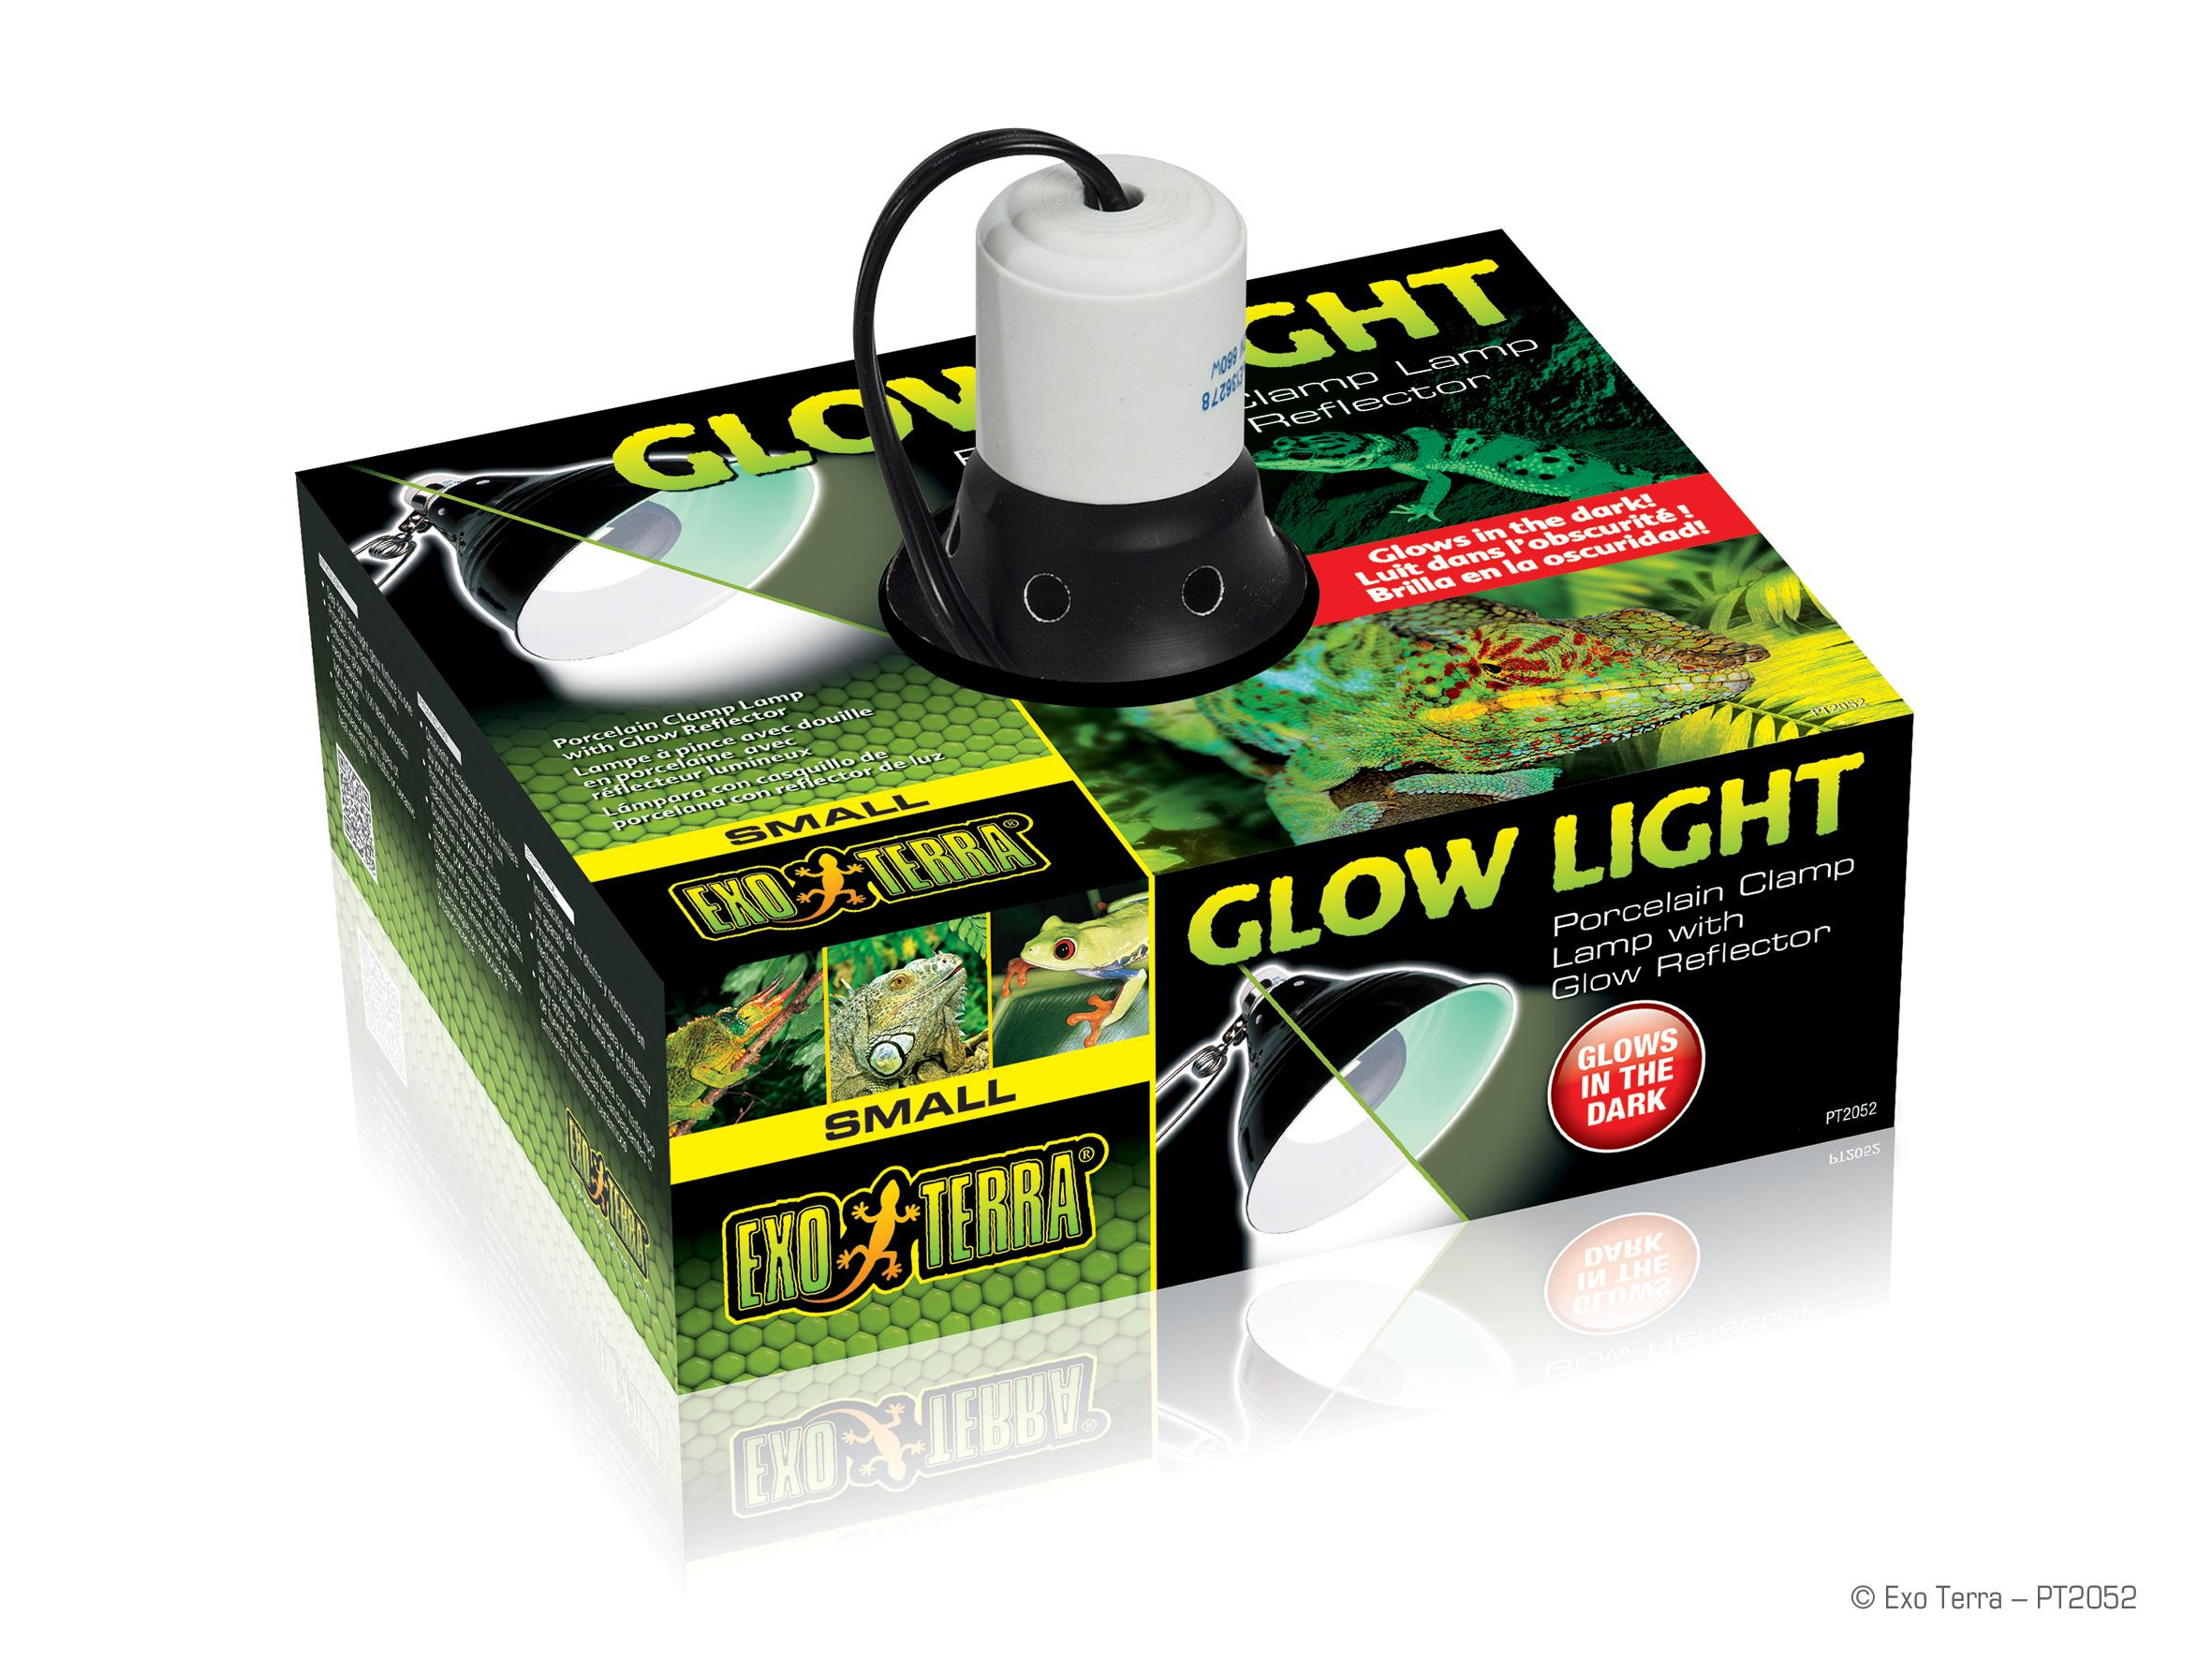 Exo Terra Glow Light for Terrariums, 5.5-in